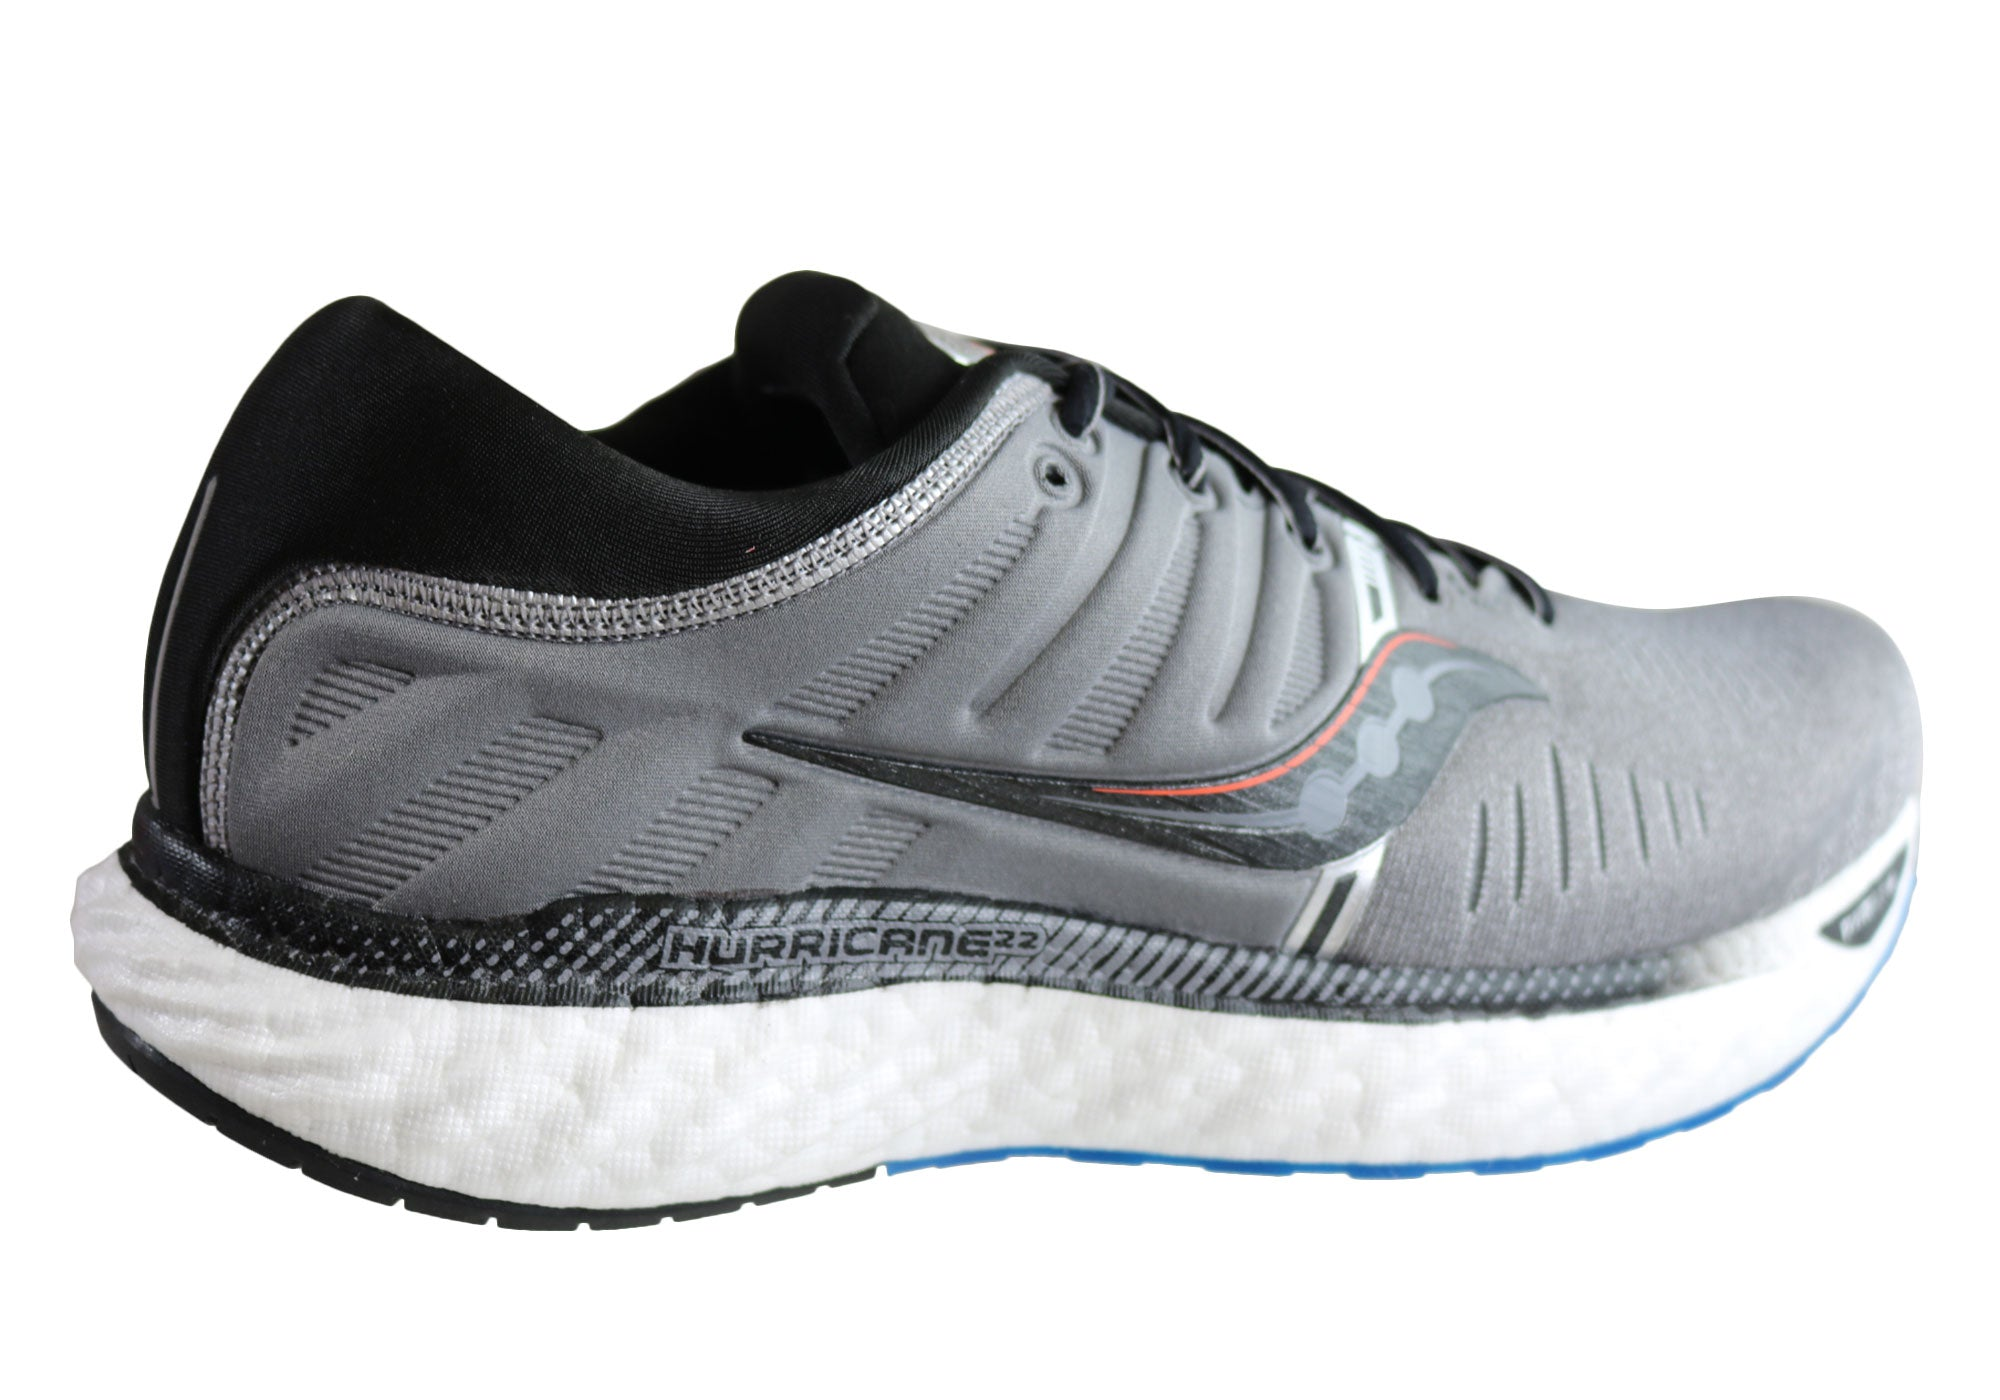 Adidas Men's Running Shoes Classic Lace Up All Match Comfy Sports Shoes